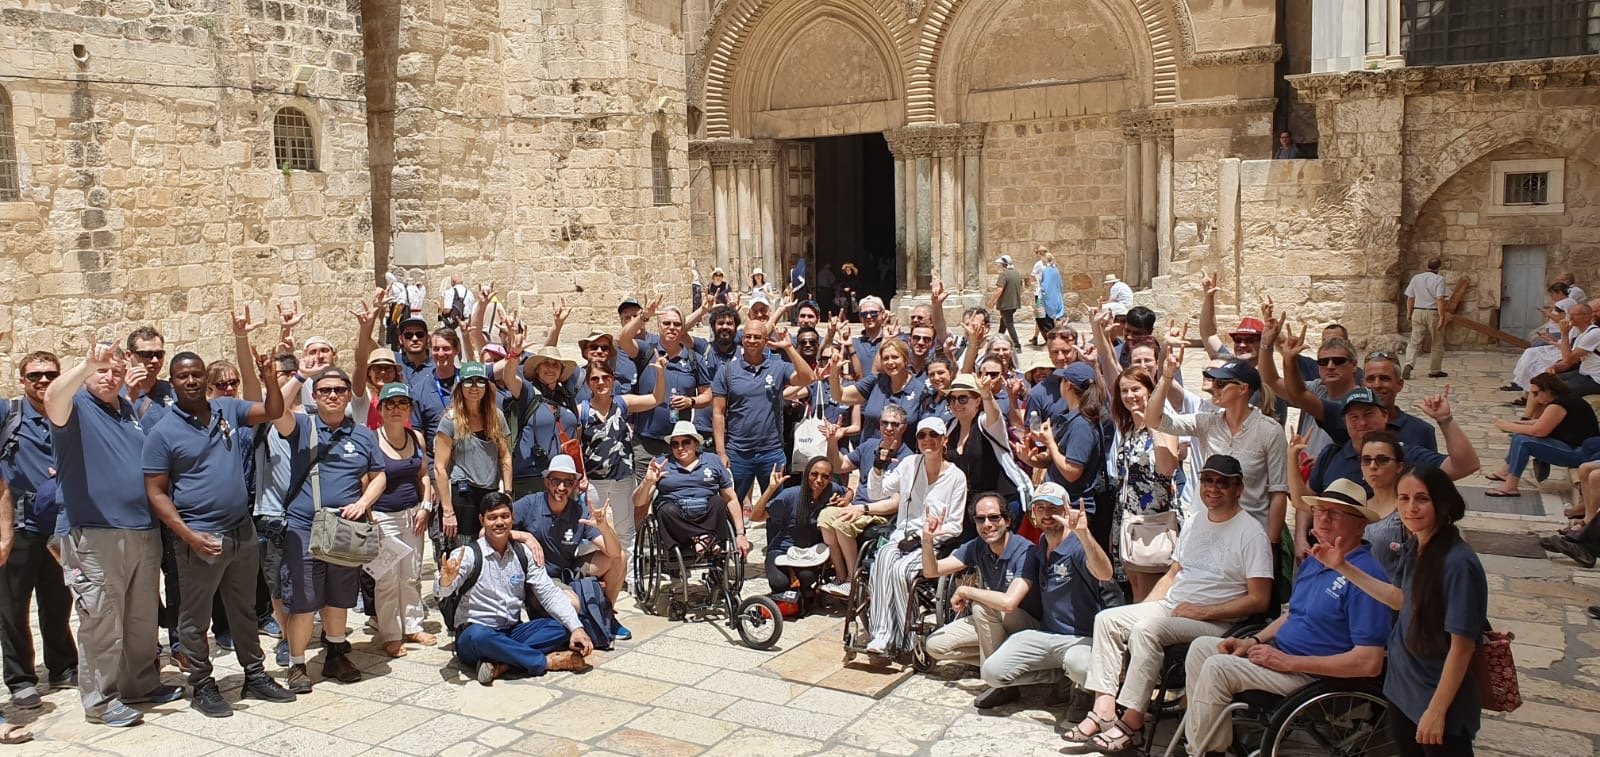 Access Israel Preconvention accessible tour of old